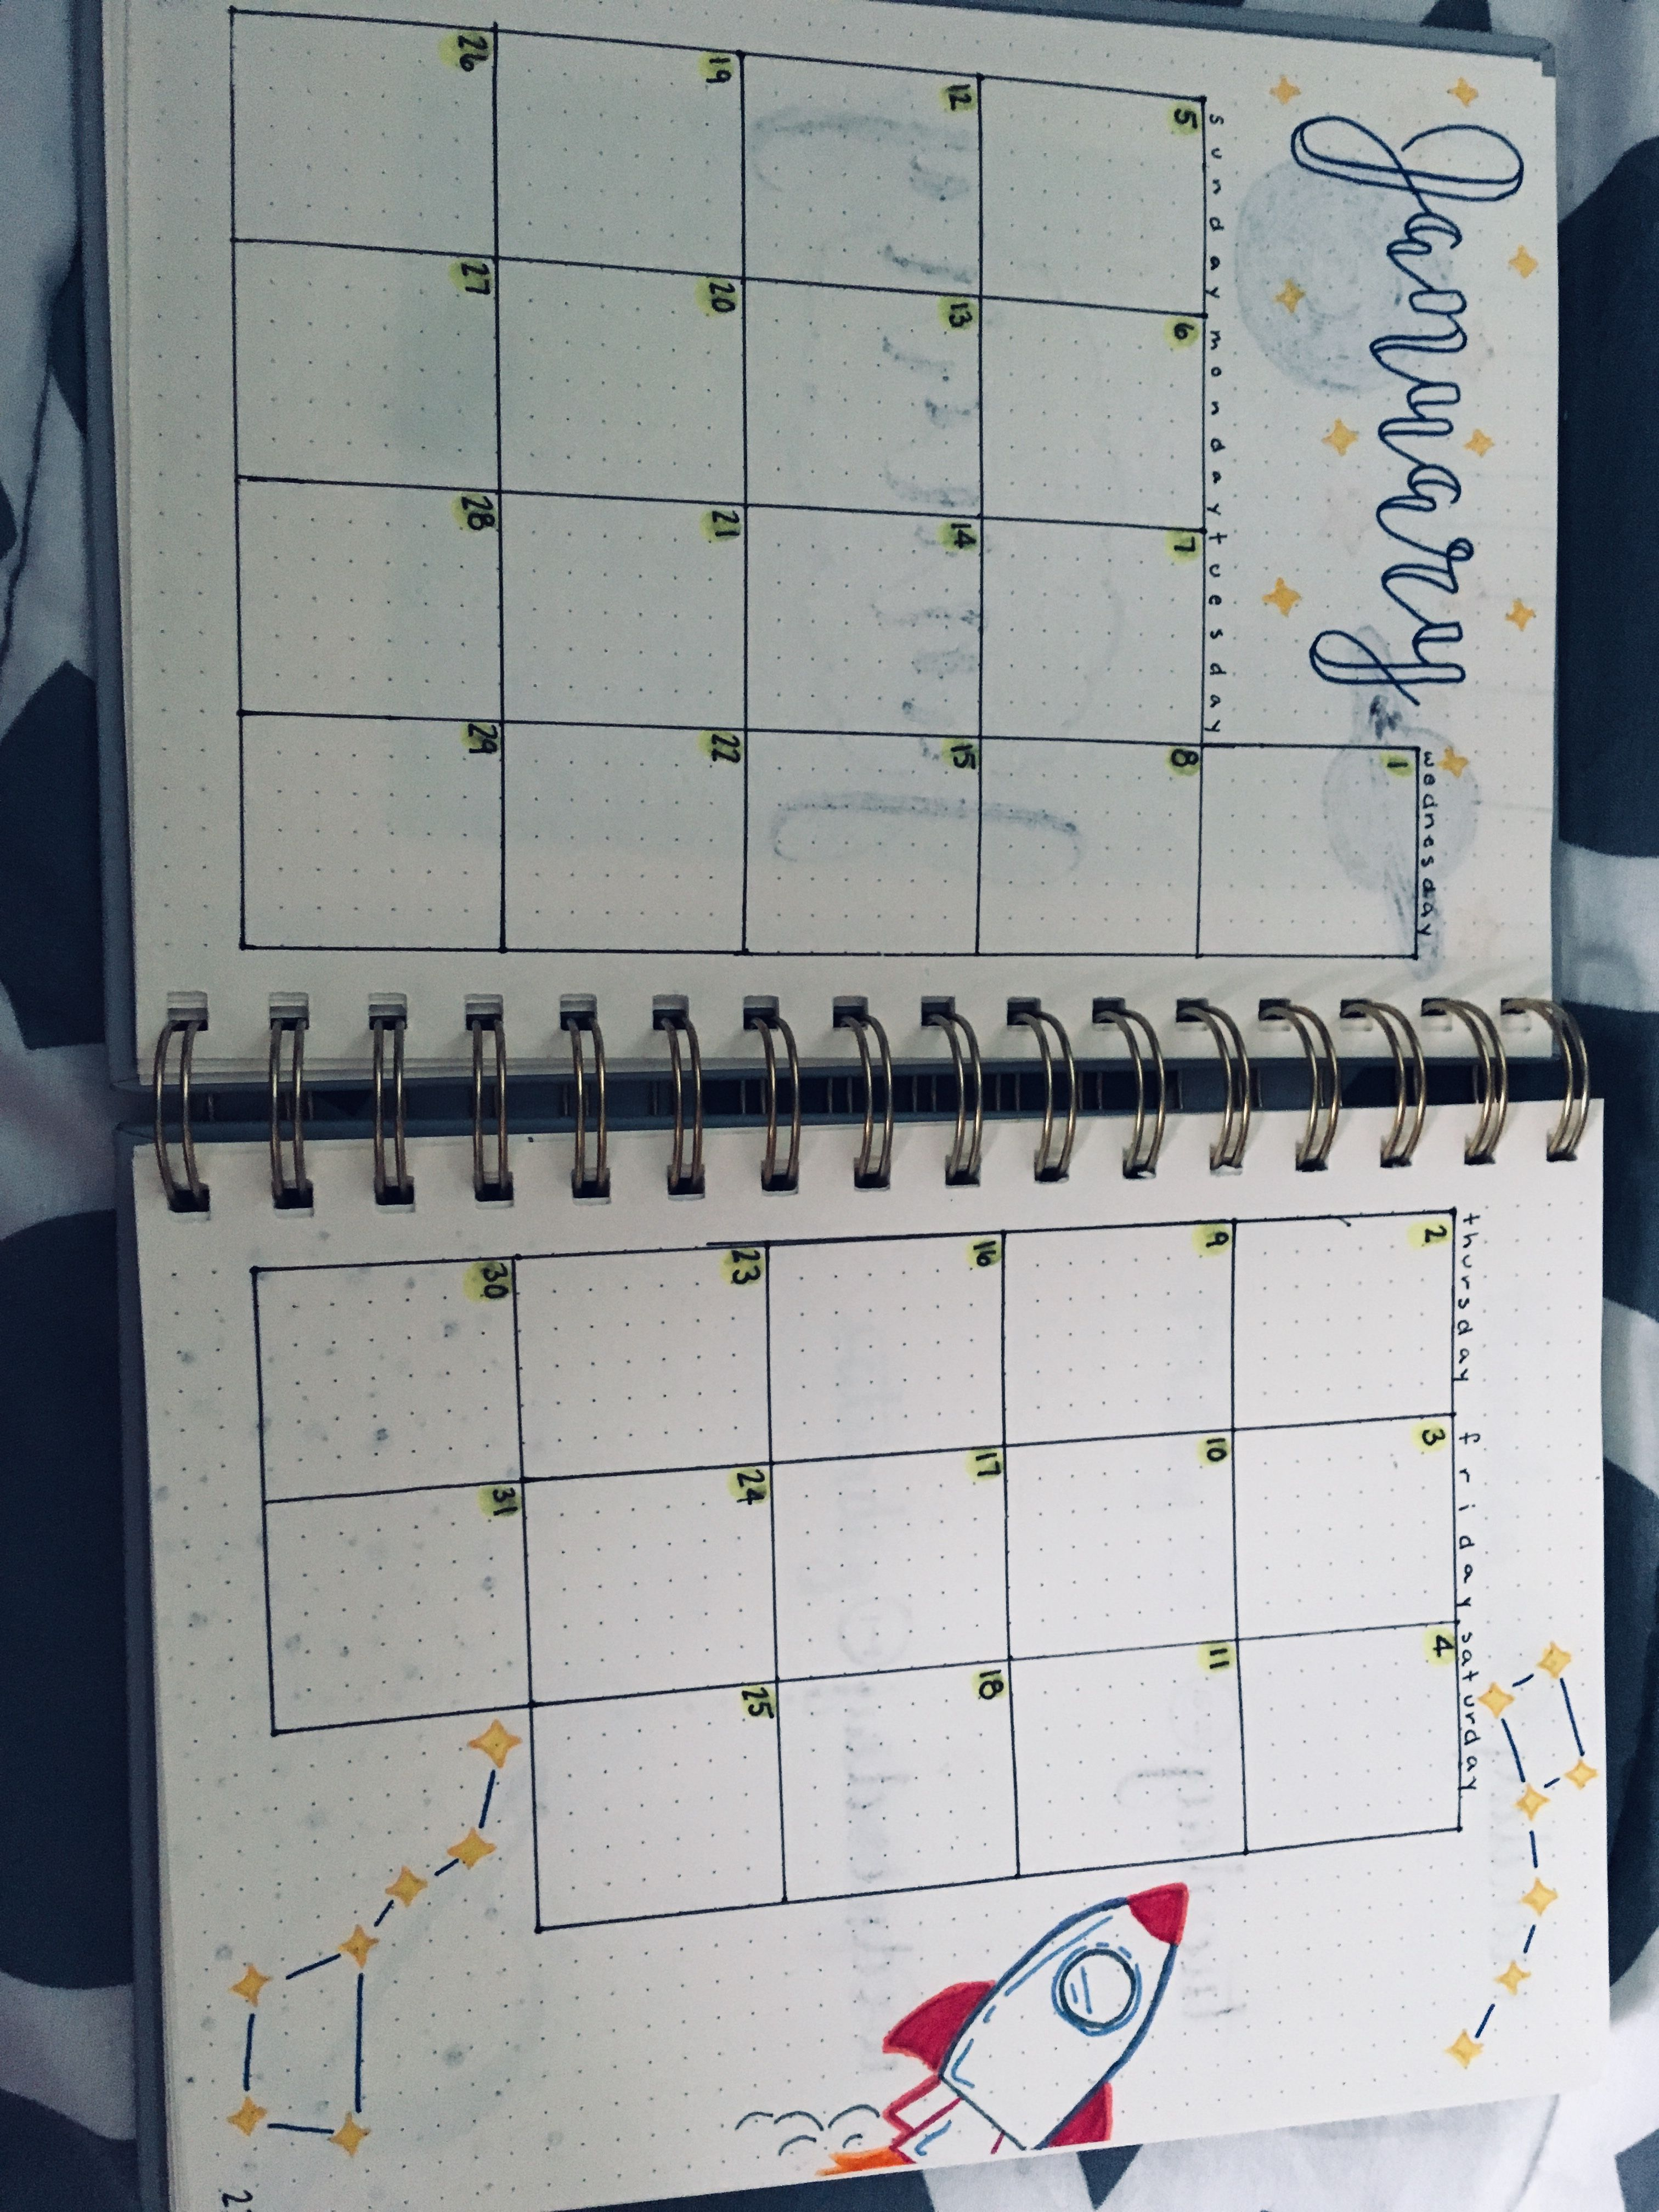 January! 2020! Space theme! Bullet Journal! Rocket! Stars